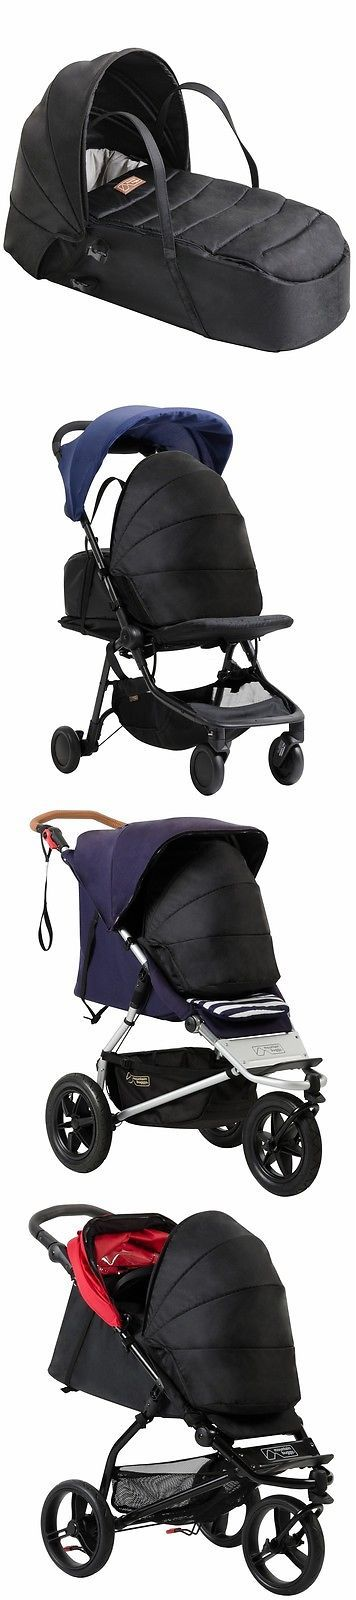 Other Baby Gear 100224: Mountain Buggy Cocoon Bassinet Carrycot For Most Mountain Buggy Strollers New!! -> BUY IT NOW ONLY: $69.99 on eBay!